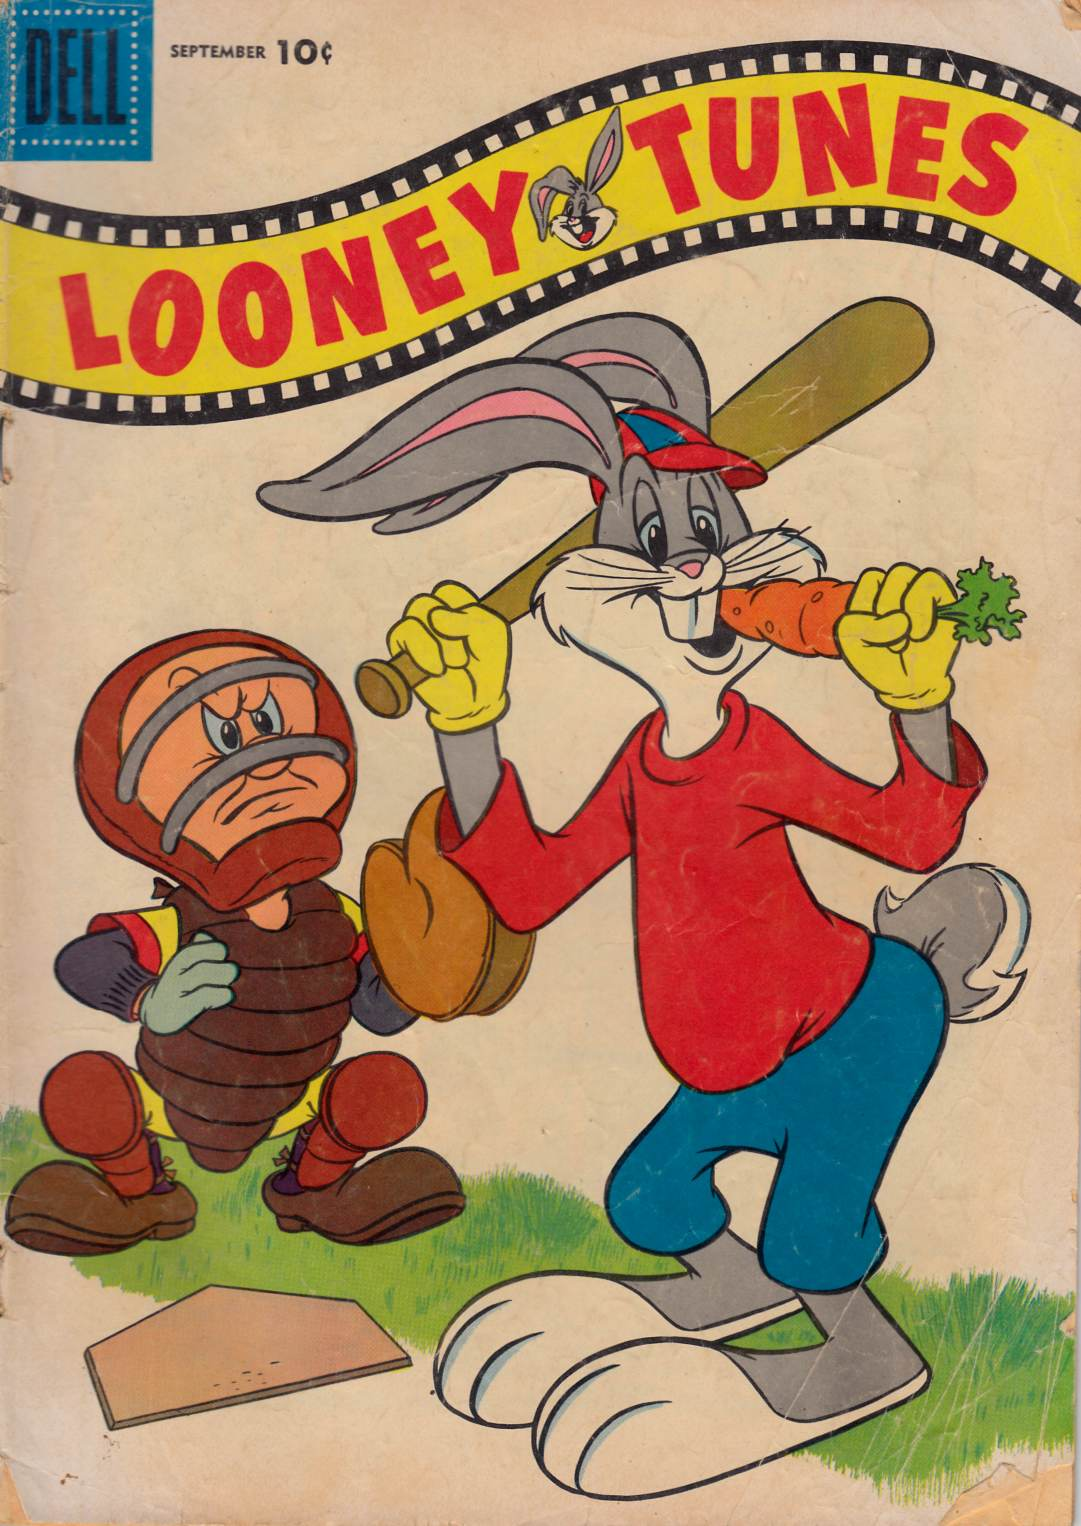 Looney Tunes #179 [Dell Comic] LARGE